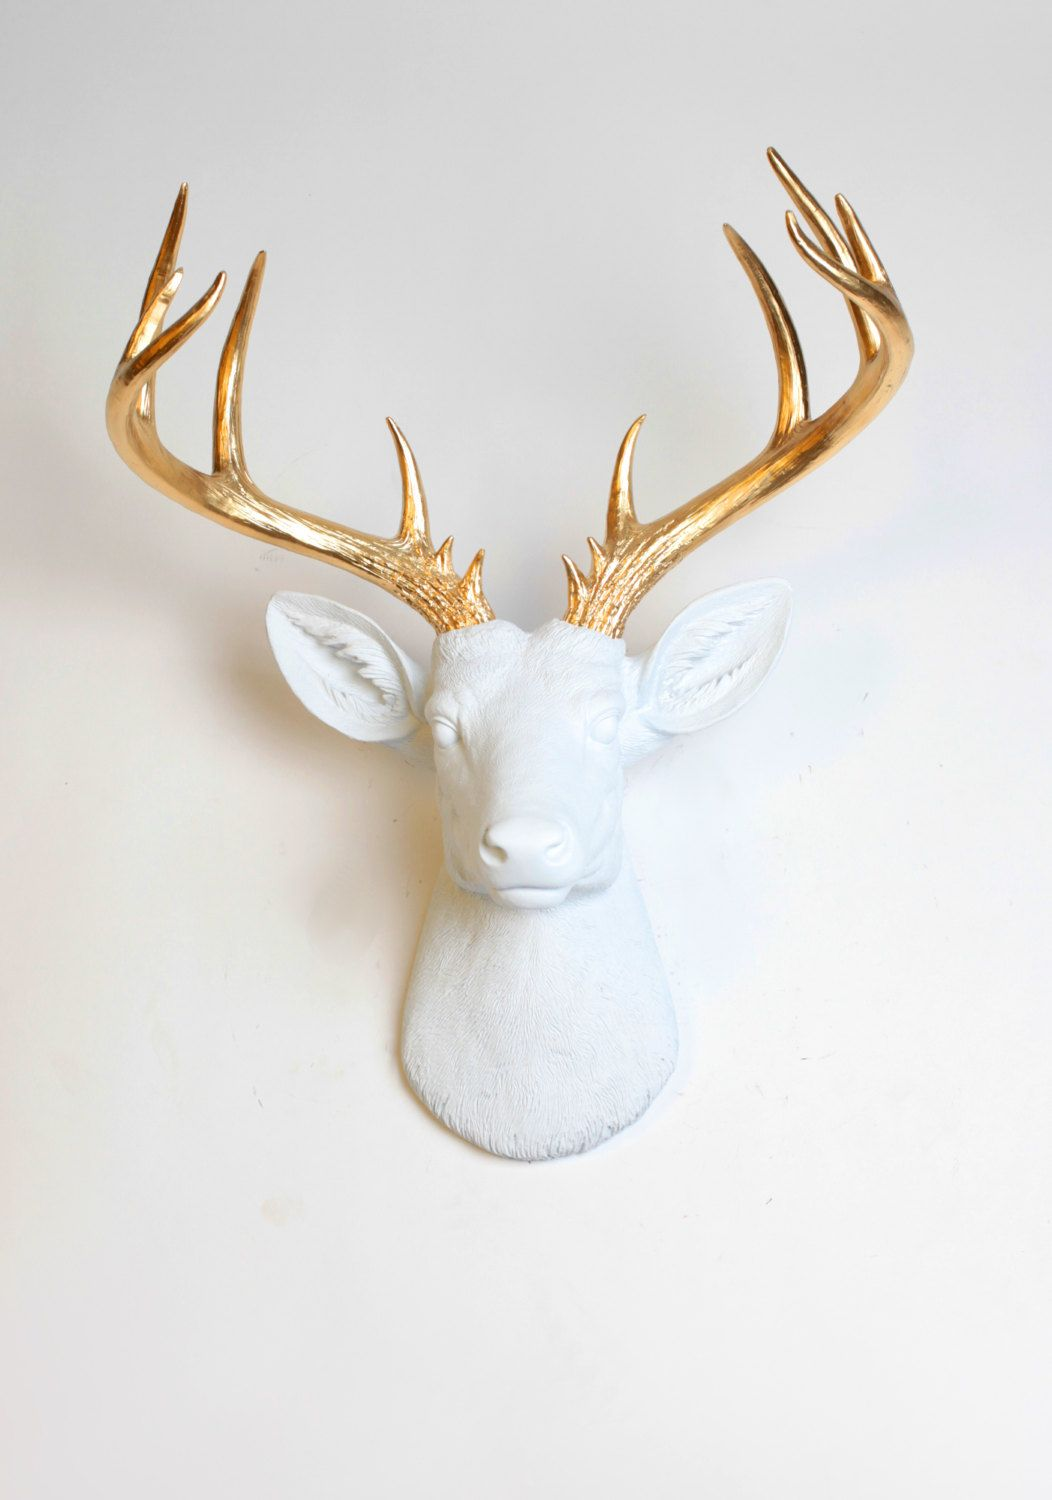 Faux Taxidermy Deer Head Wall Mount Décor   The XL Alfred   Large Deer Gold  Antlers Wall Hanging   Fake Animal Head By White Faux Taxidermy (94.99 USD)  By ...